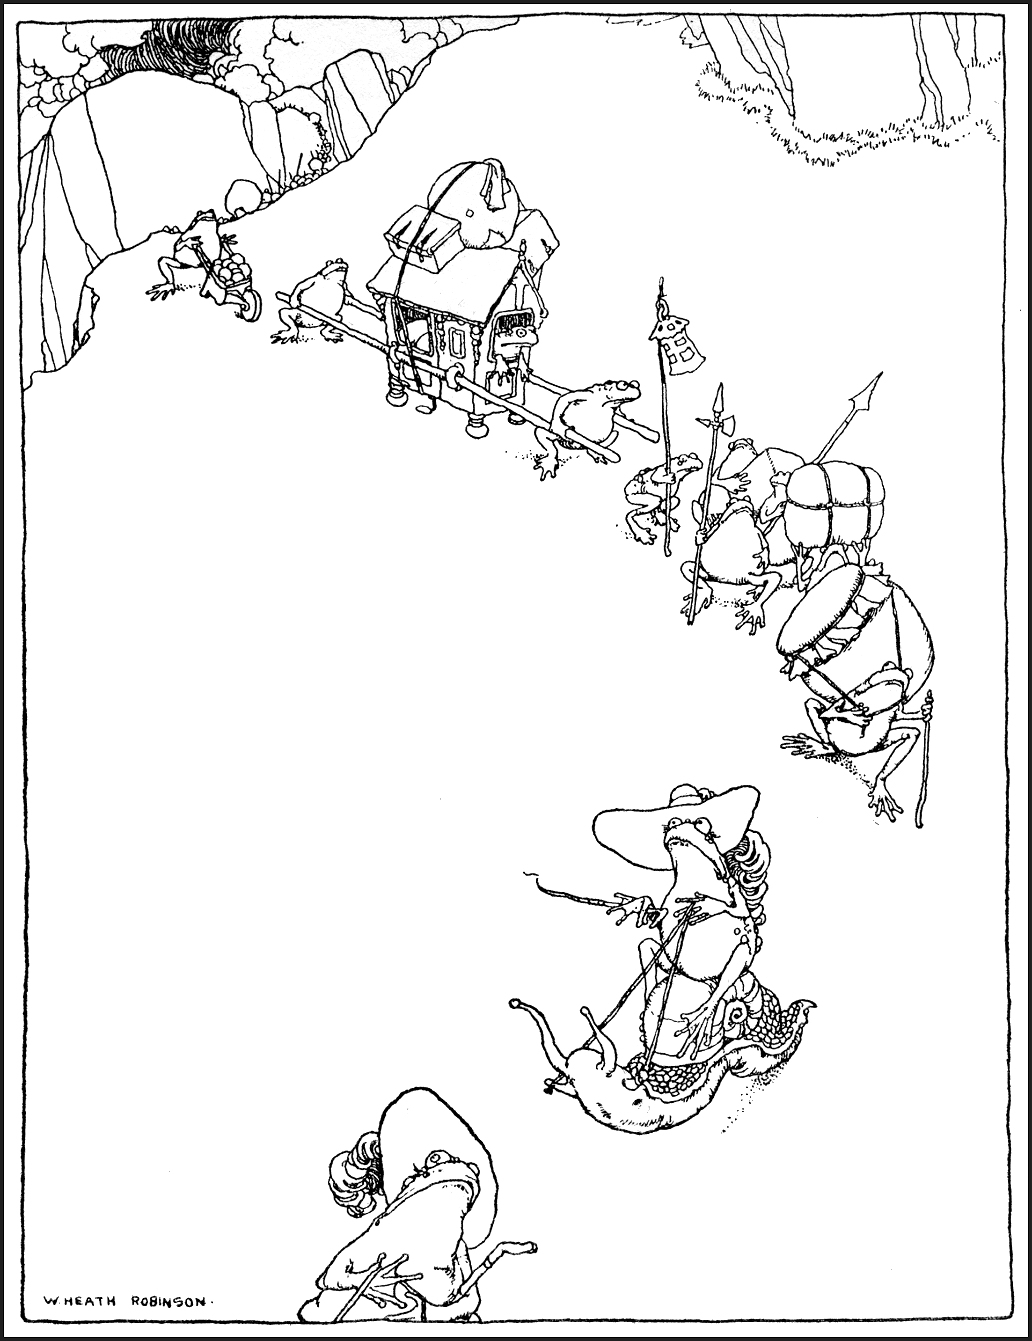 orphan annie coloring book pages - photo #20